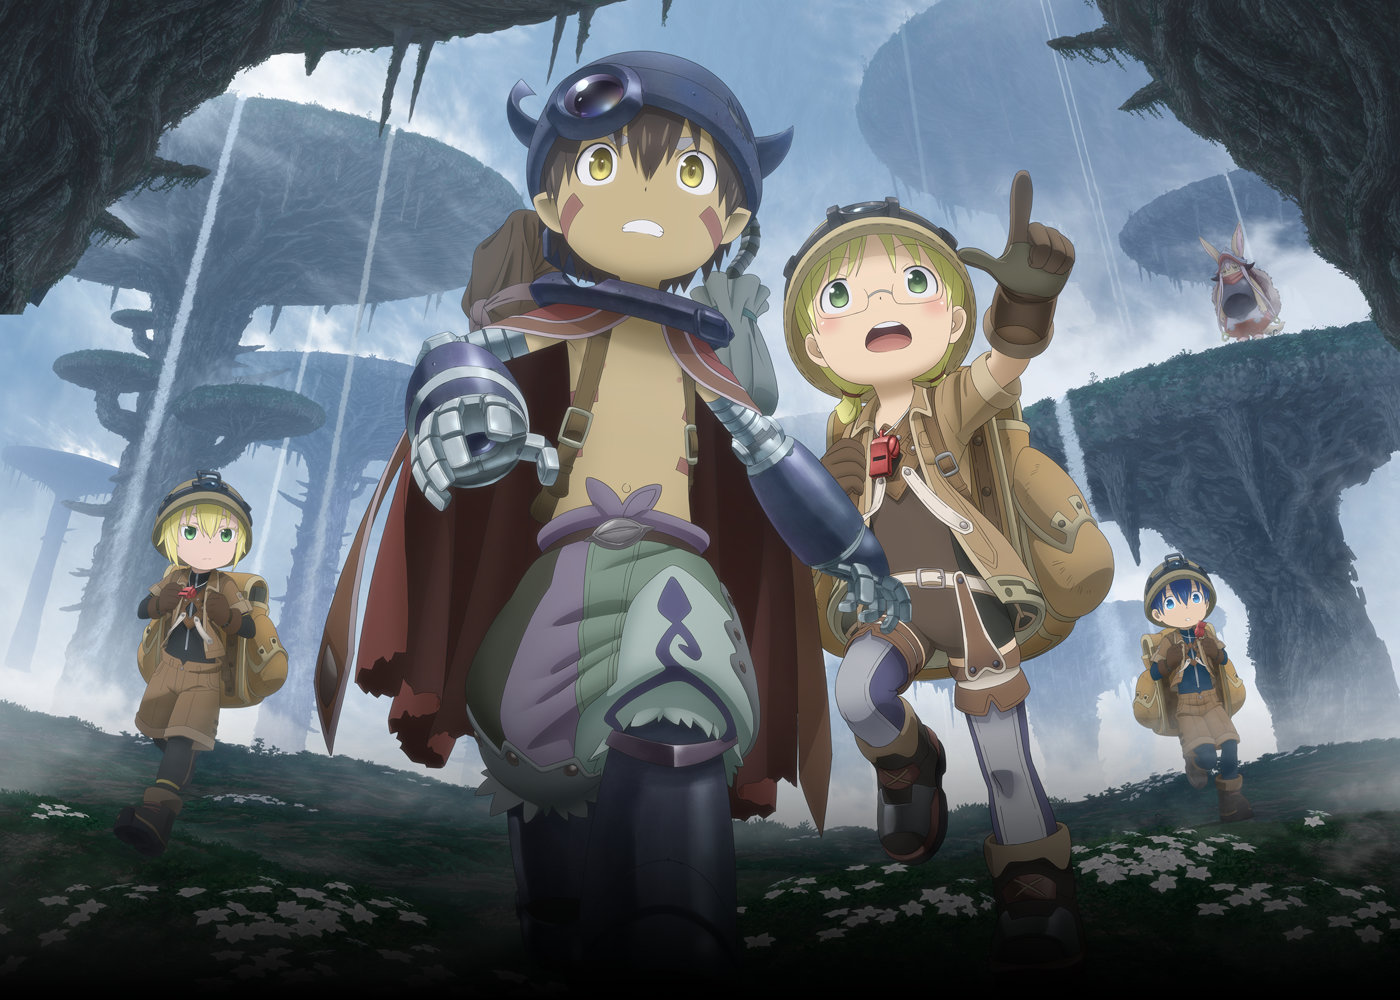 Anime-style archaeologist girl and robot boy look scared while others watch from the distance.